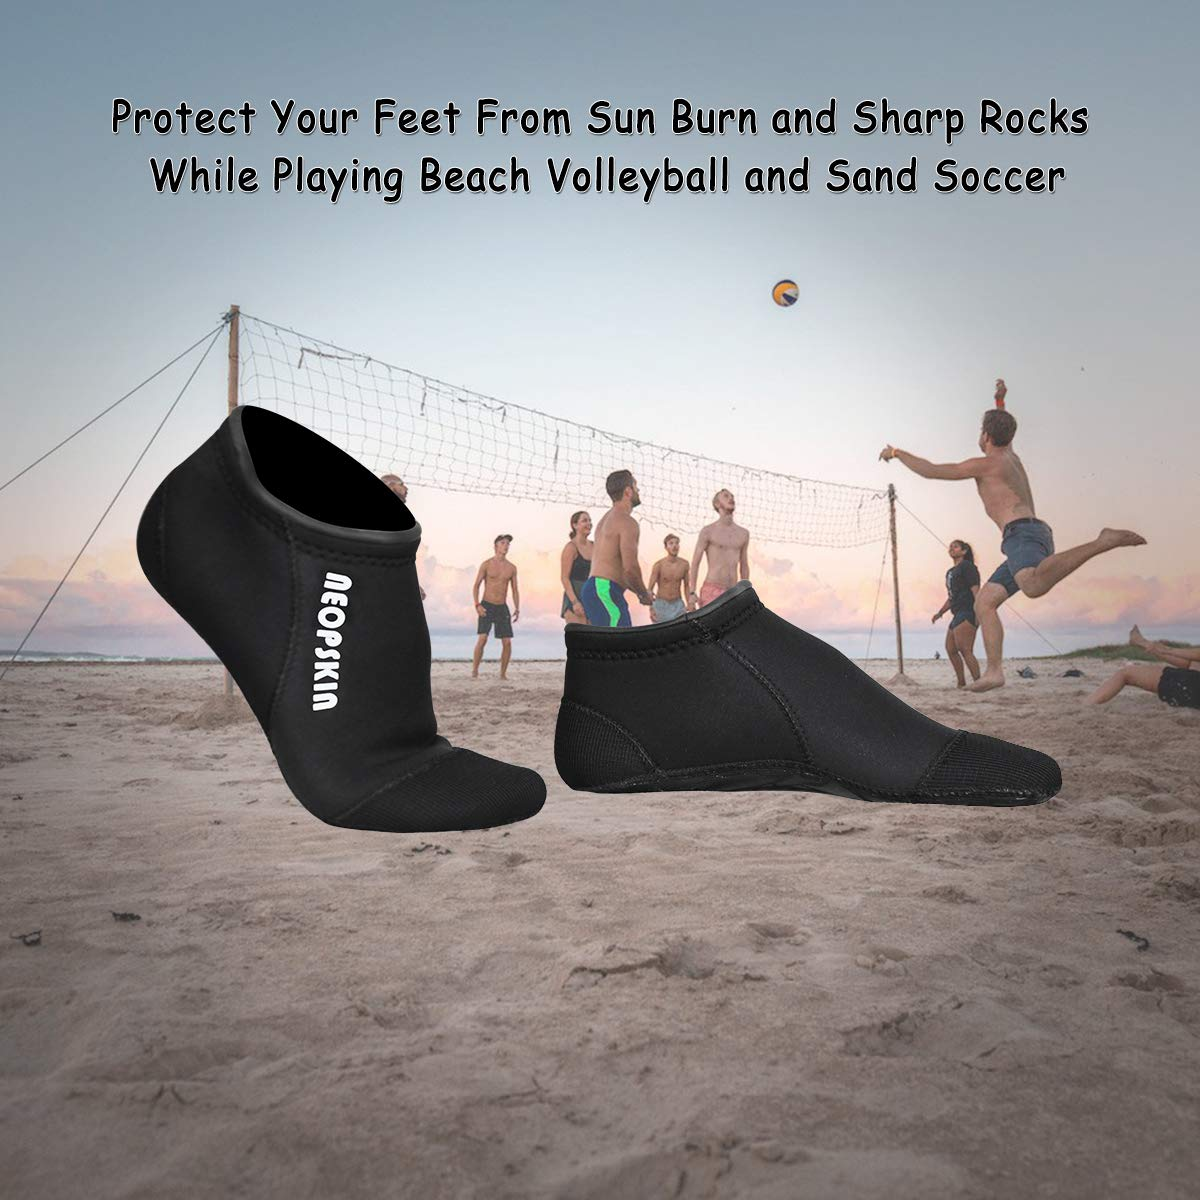 Diving Boots Sports Outdoors Neoprene Socks 3mm Beach Volleyball Sand Soccer Socks Water Booties Wet Shoes For Scuba Diving Swimming Surfing Snorkeling Fishing Wading Kayak